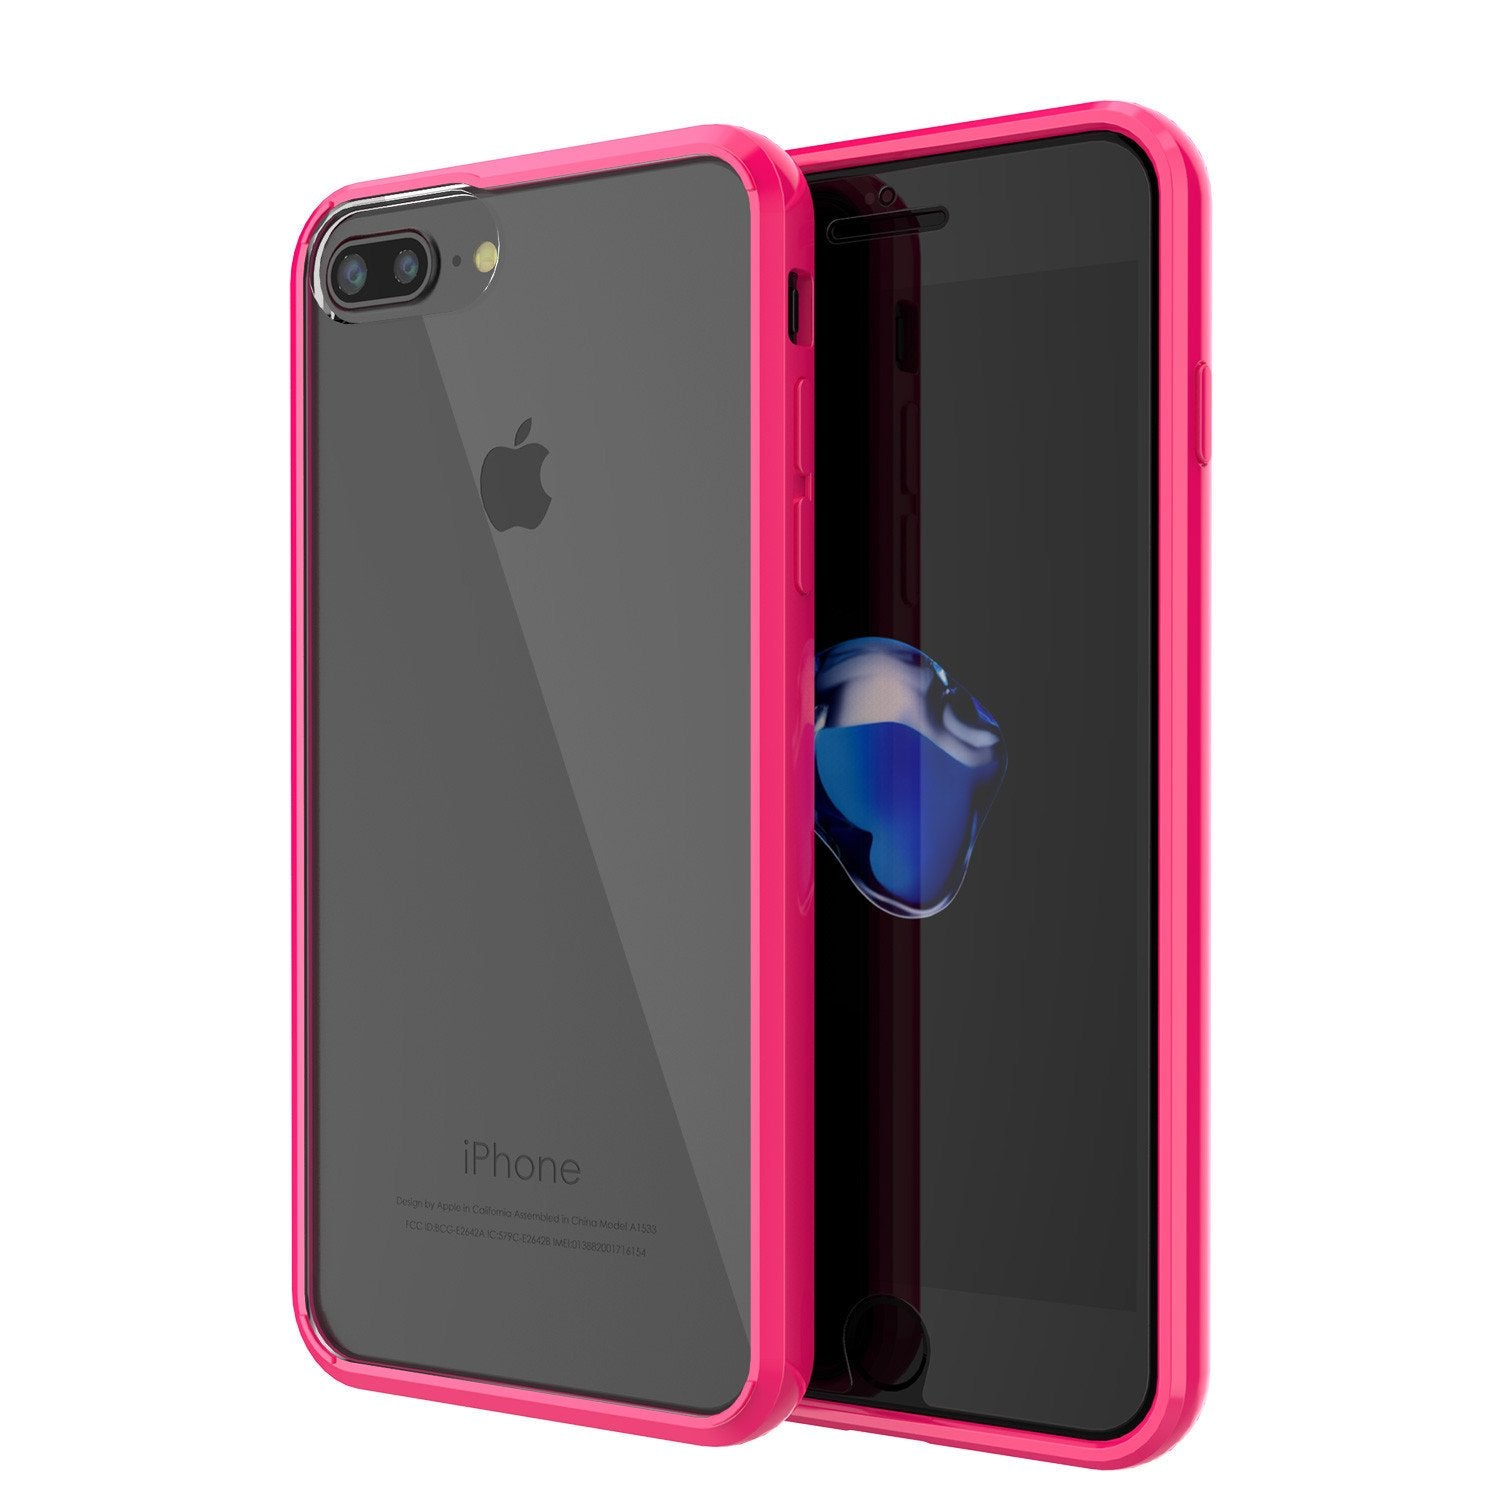 iPhone 7 Case Punkcase® LUCID 2.0 Pink Series for Apple iPhone 7 Slim | Slick Frame Lifetime Warranty Exchange